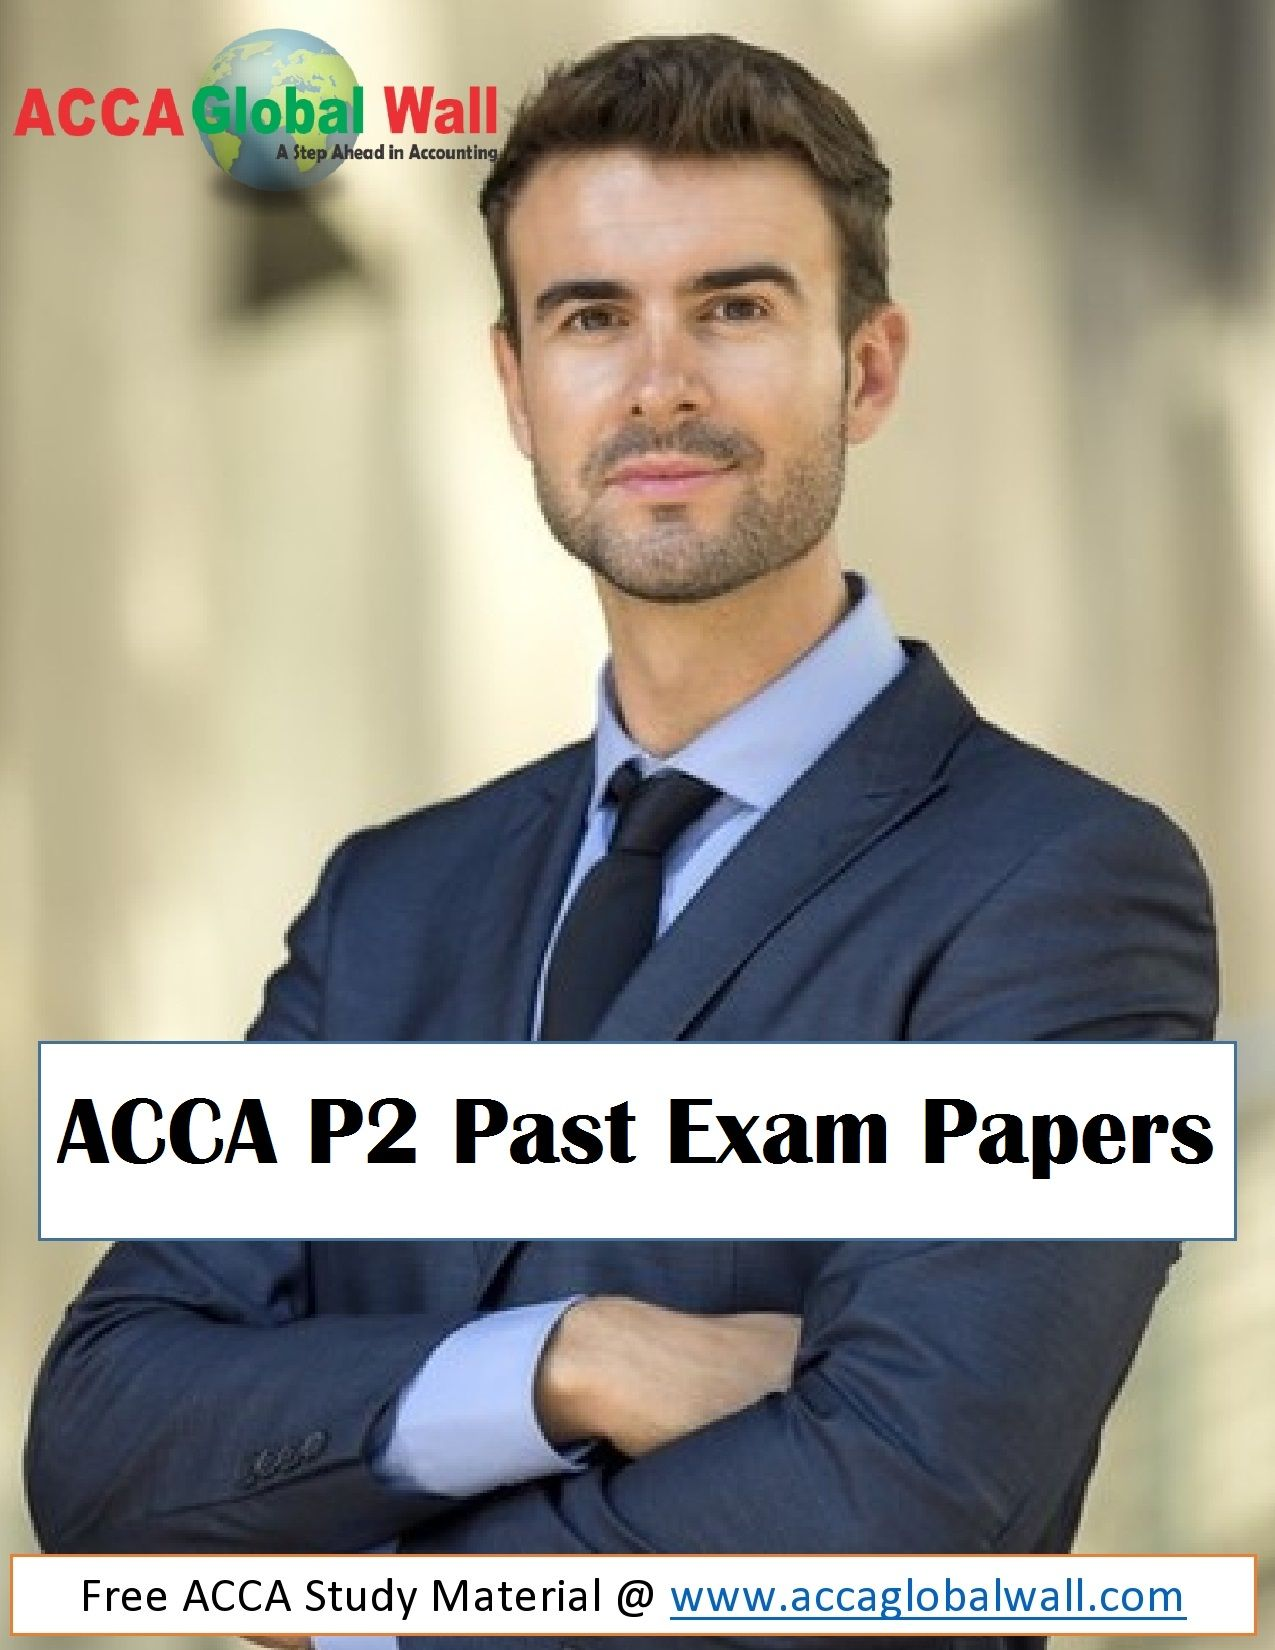 ACCA P2 Past Exam Papers are now available for download